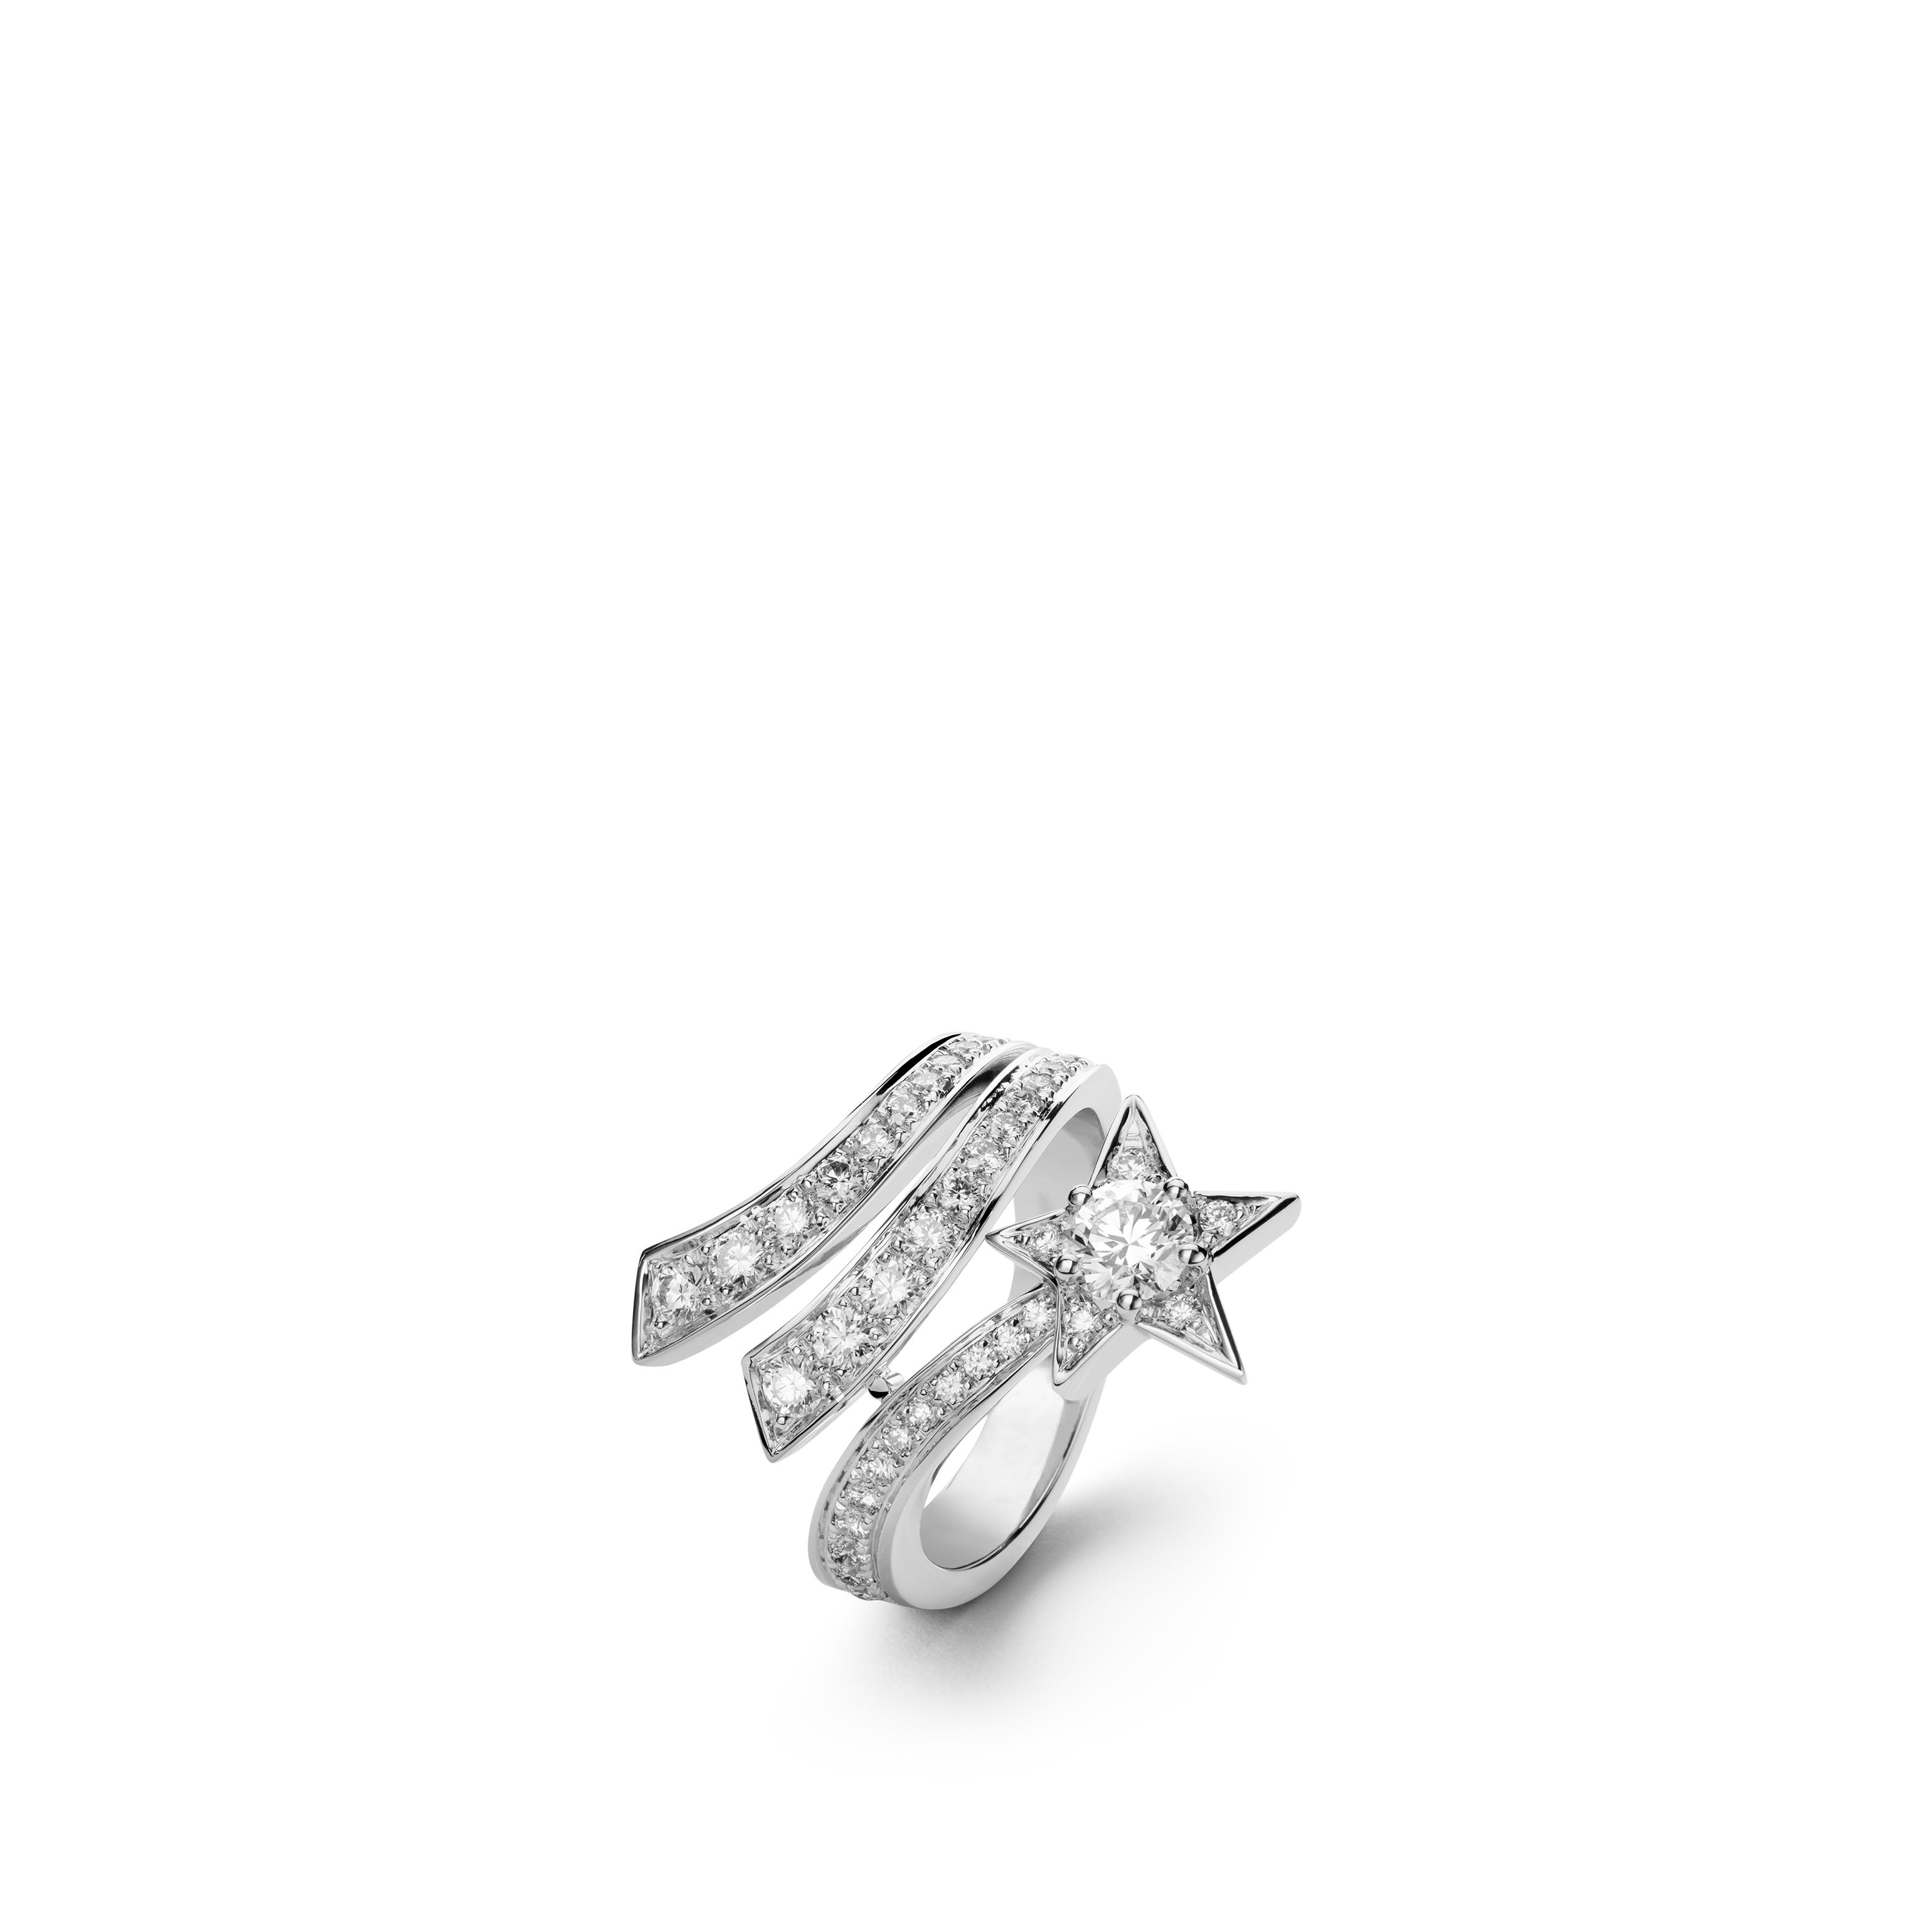 Étoile Filante ring - 18K white gold, diamonds - CHANEL - Default view - see standard sized version